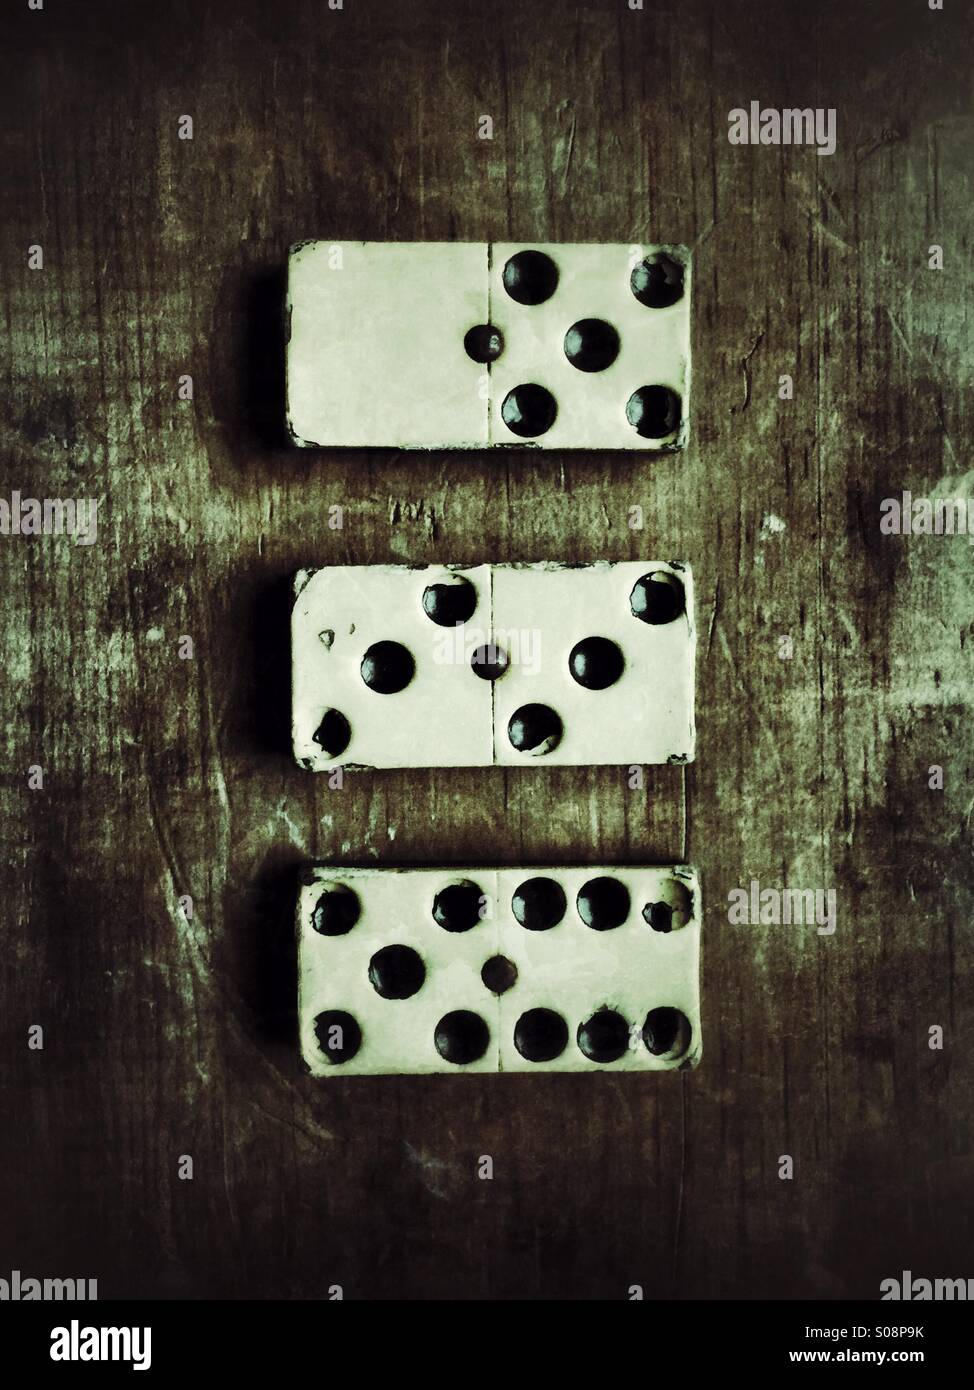 Old domino pieces - Stock Image